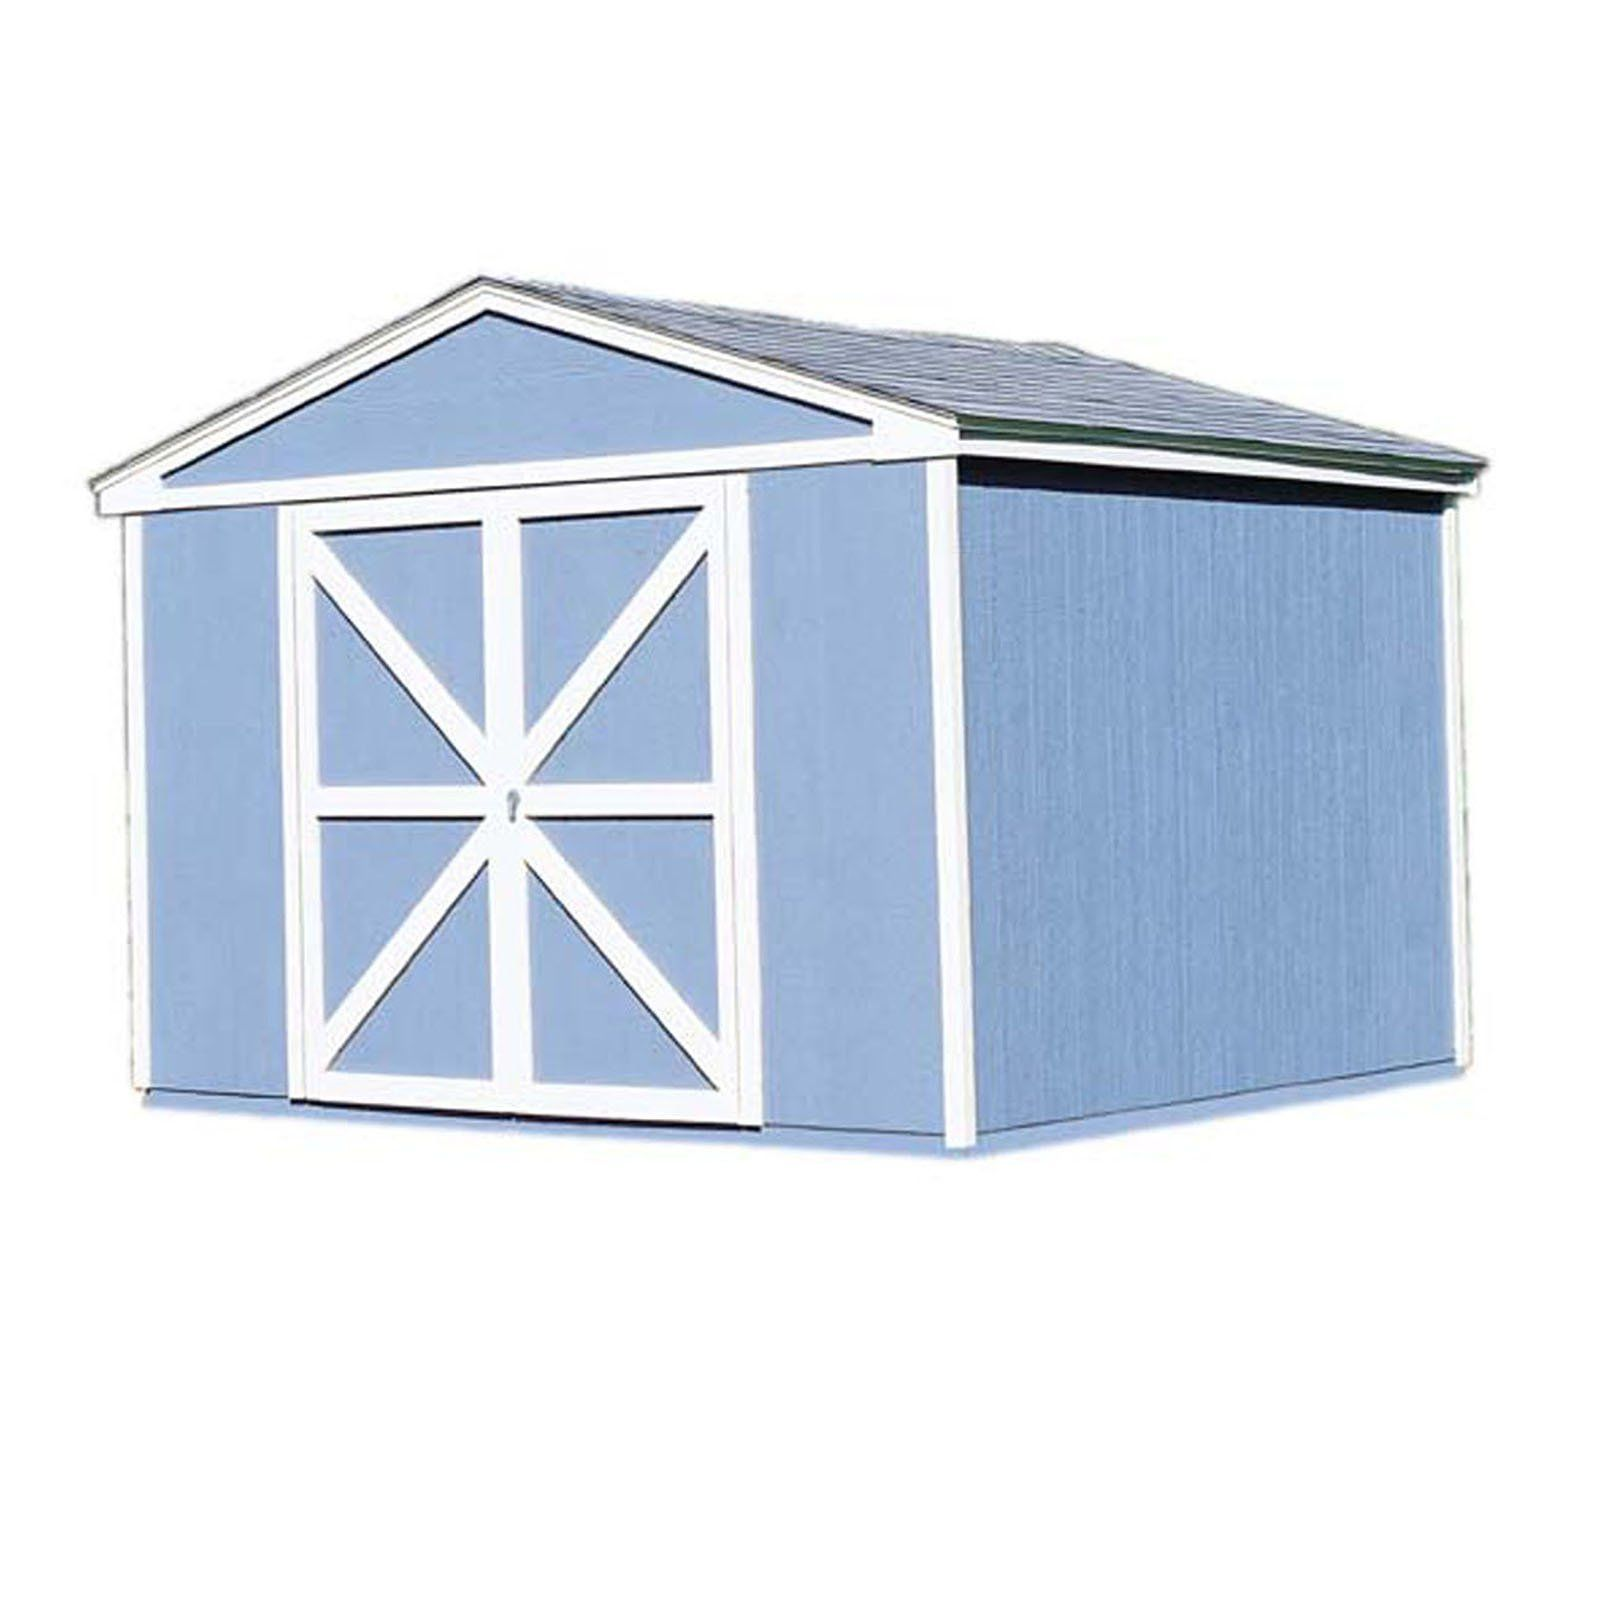 Handy Home Somerset Storage Shed 10 X 8 Ft 18501 4 Wood Storage Sheds Shed Storage Wood Storage